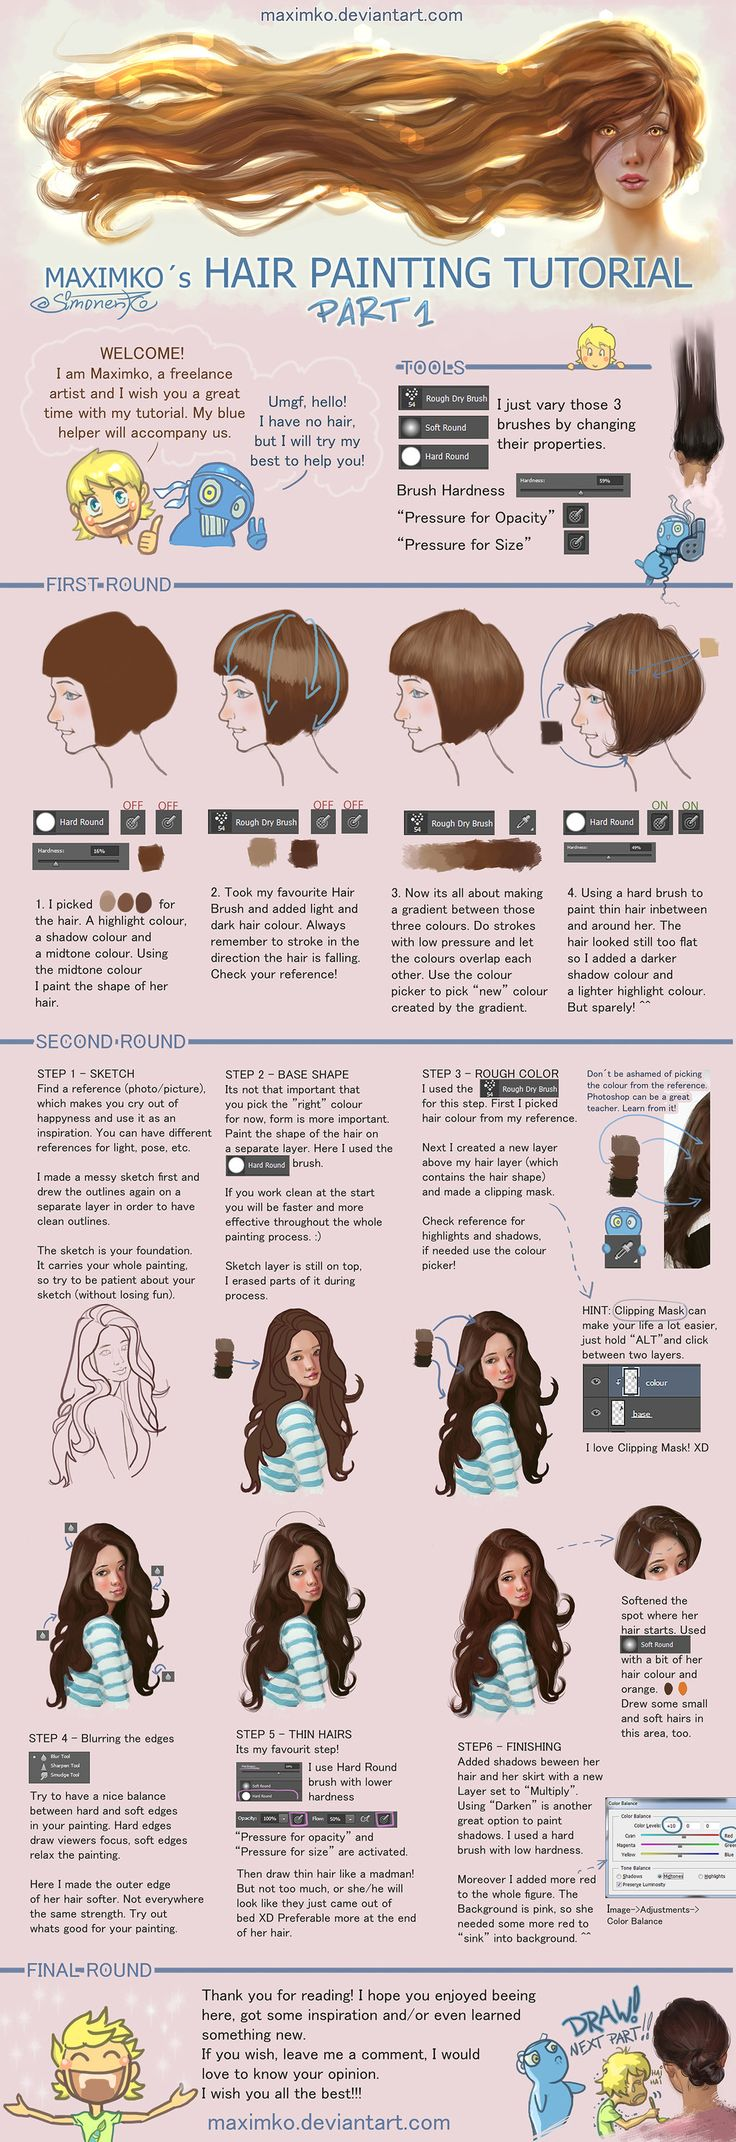 Hair Tutorial - Part 1 by Maximko on DeviantArt